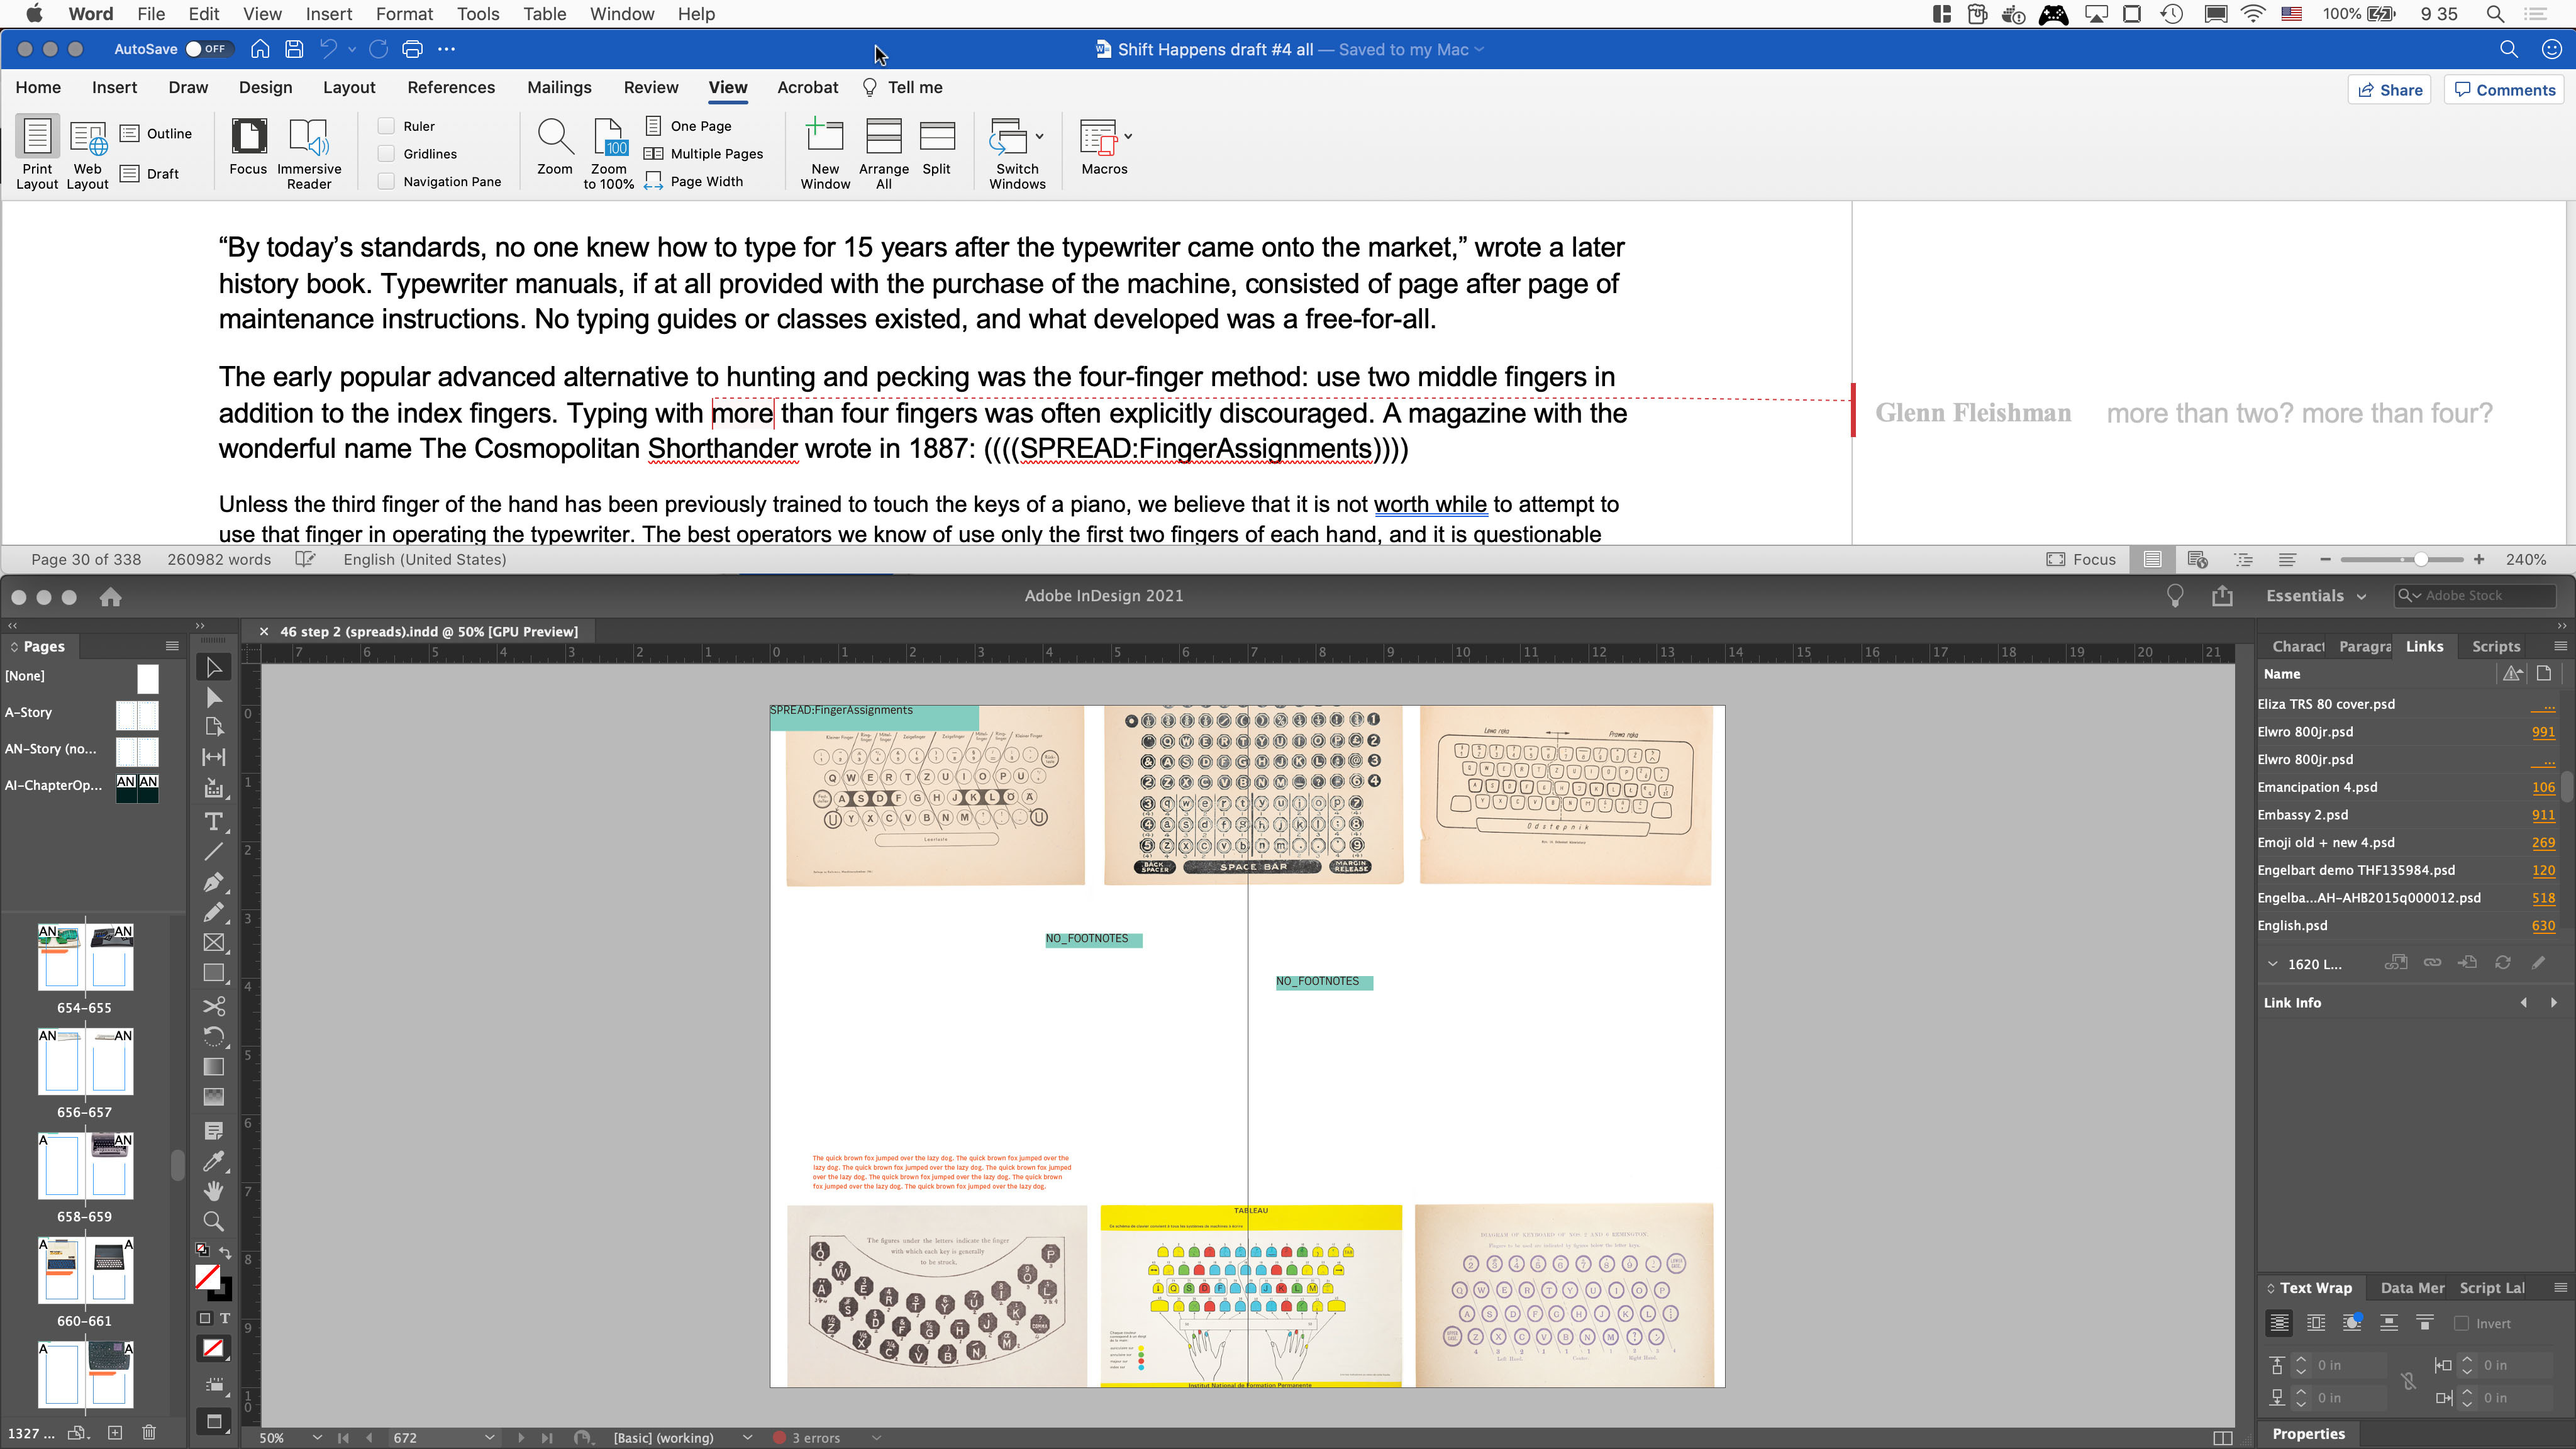 ↑ A passage in Word linking to a spread ↓ The spread and image caption ready for its text